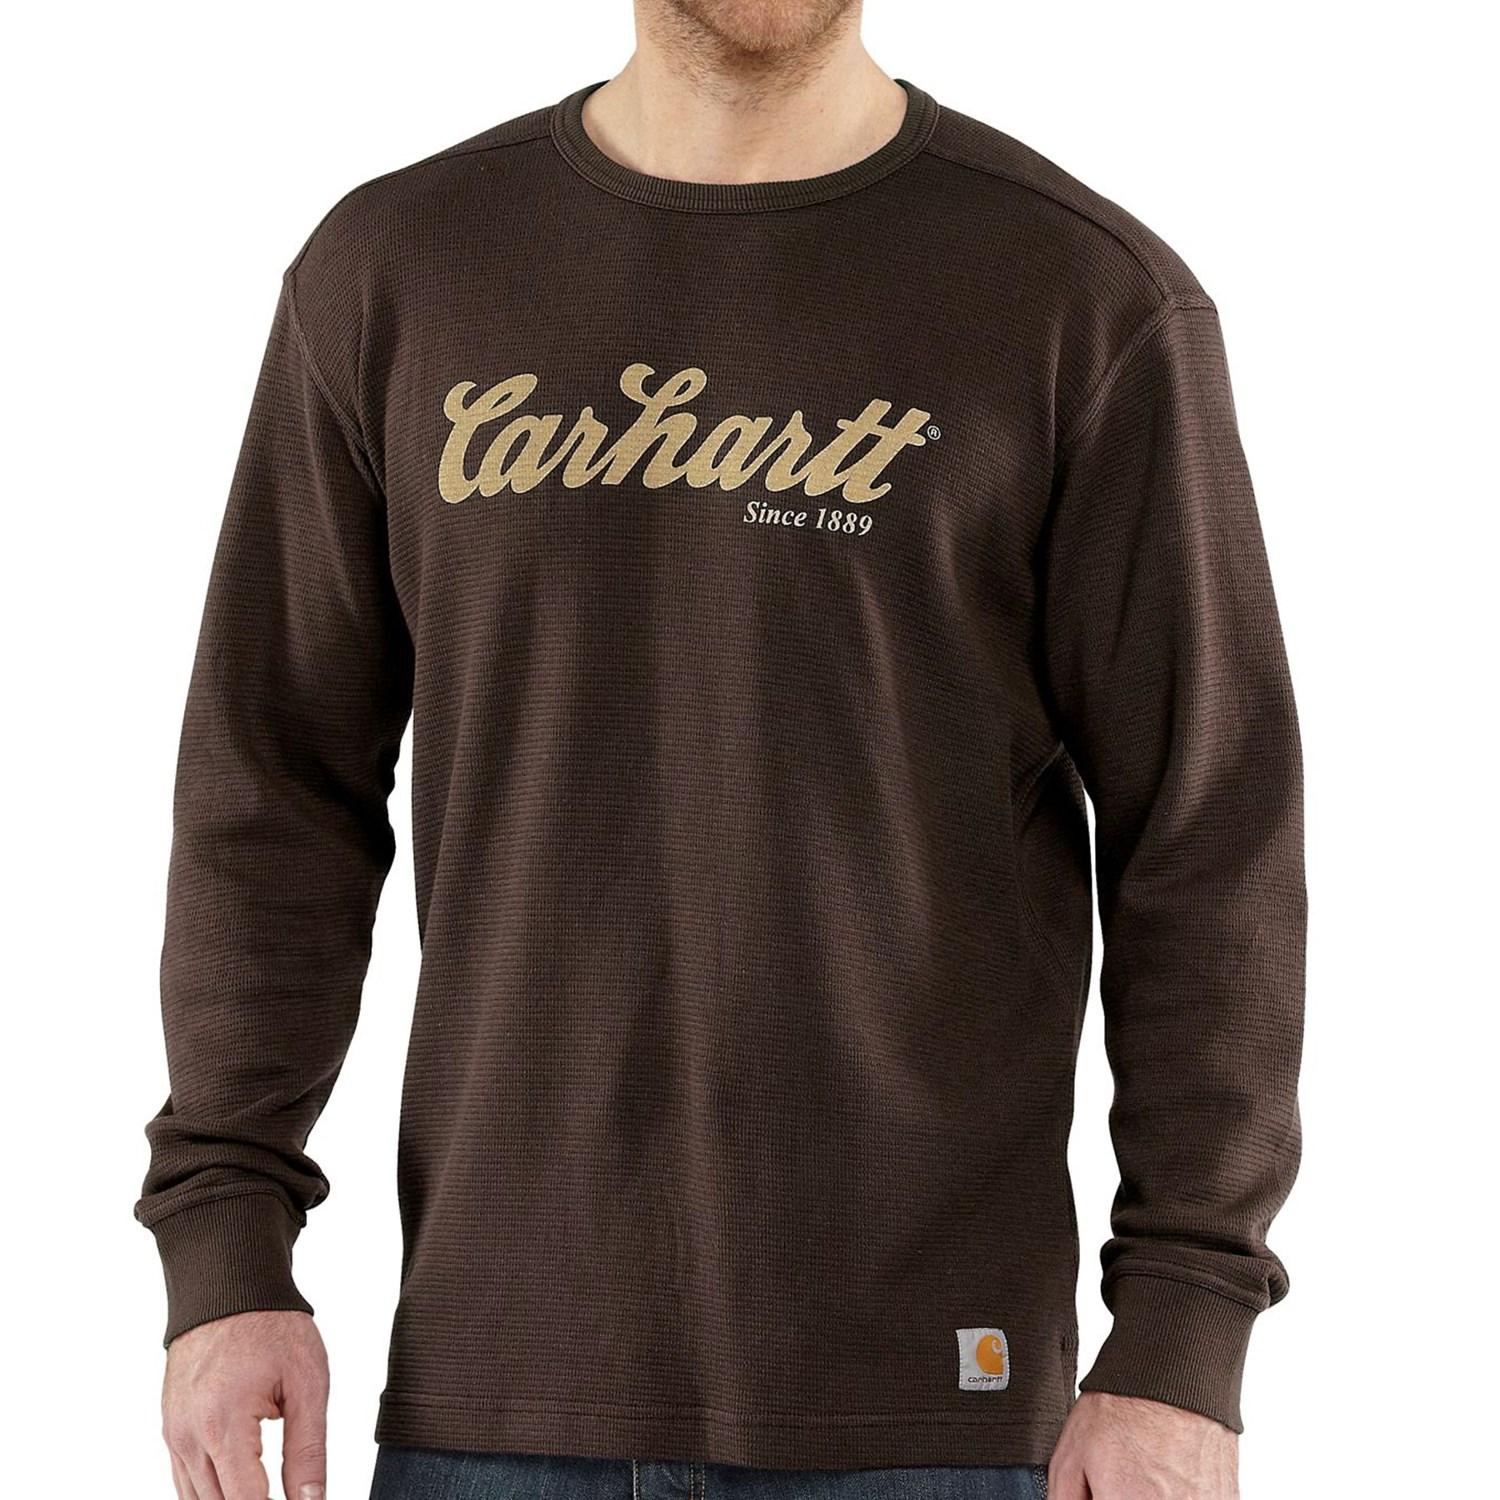 Carhartt graphic t shirt for big and tall men for 3xl tall graphic t shirts